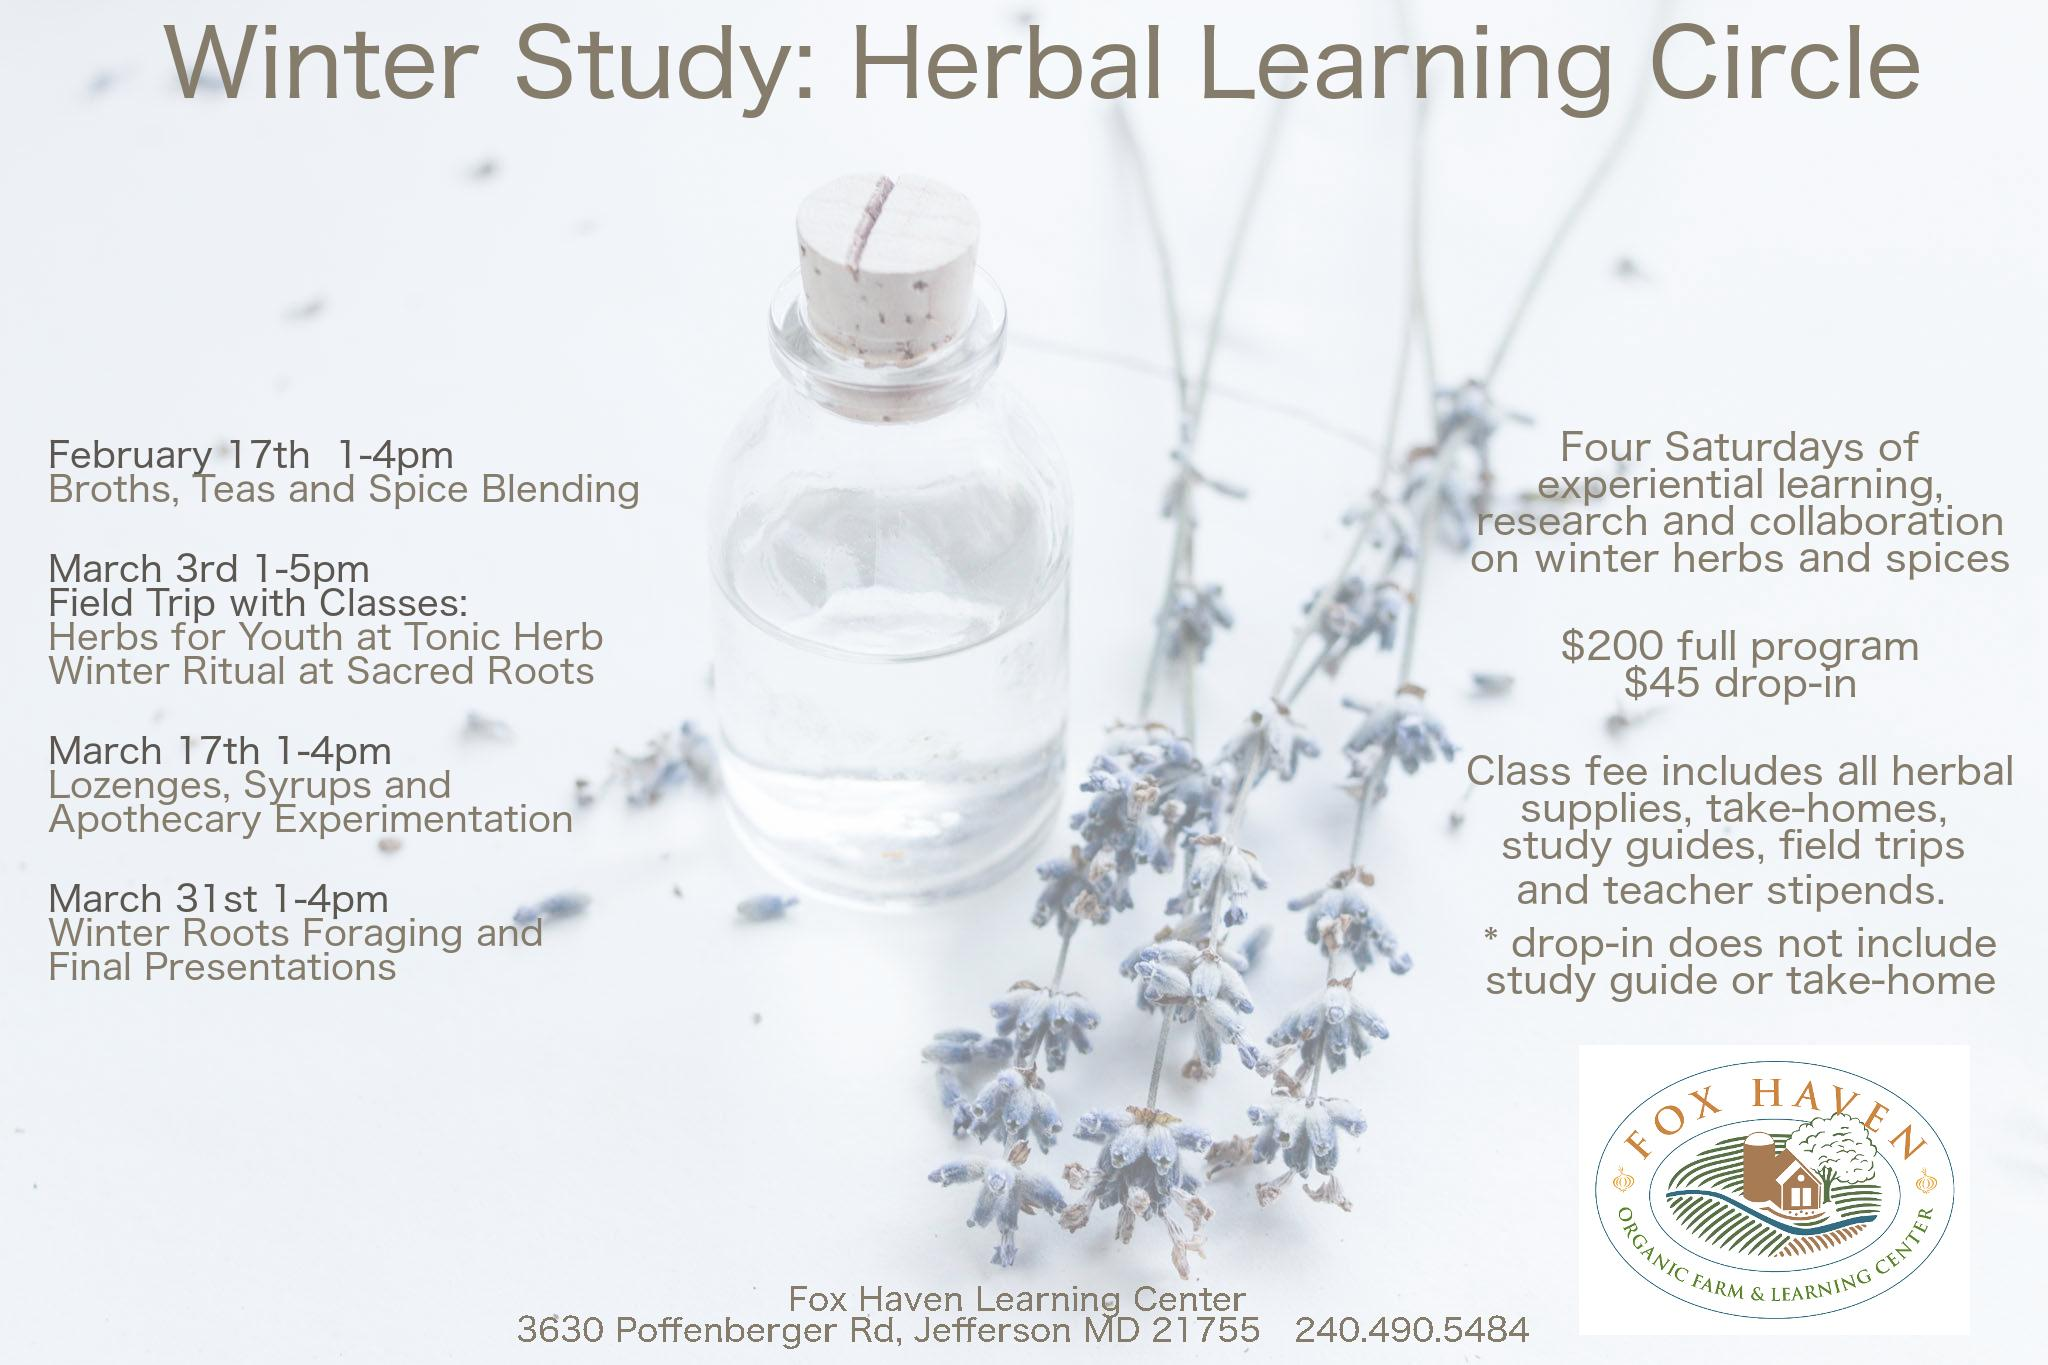 Field Trip - Tonic Herb Shop / Winter Study: Herbal Learning Circle